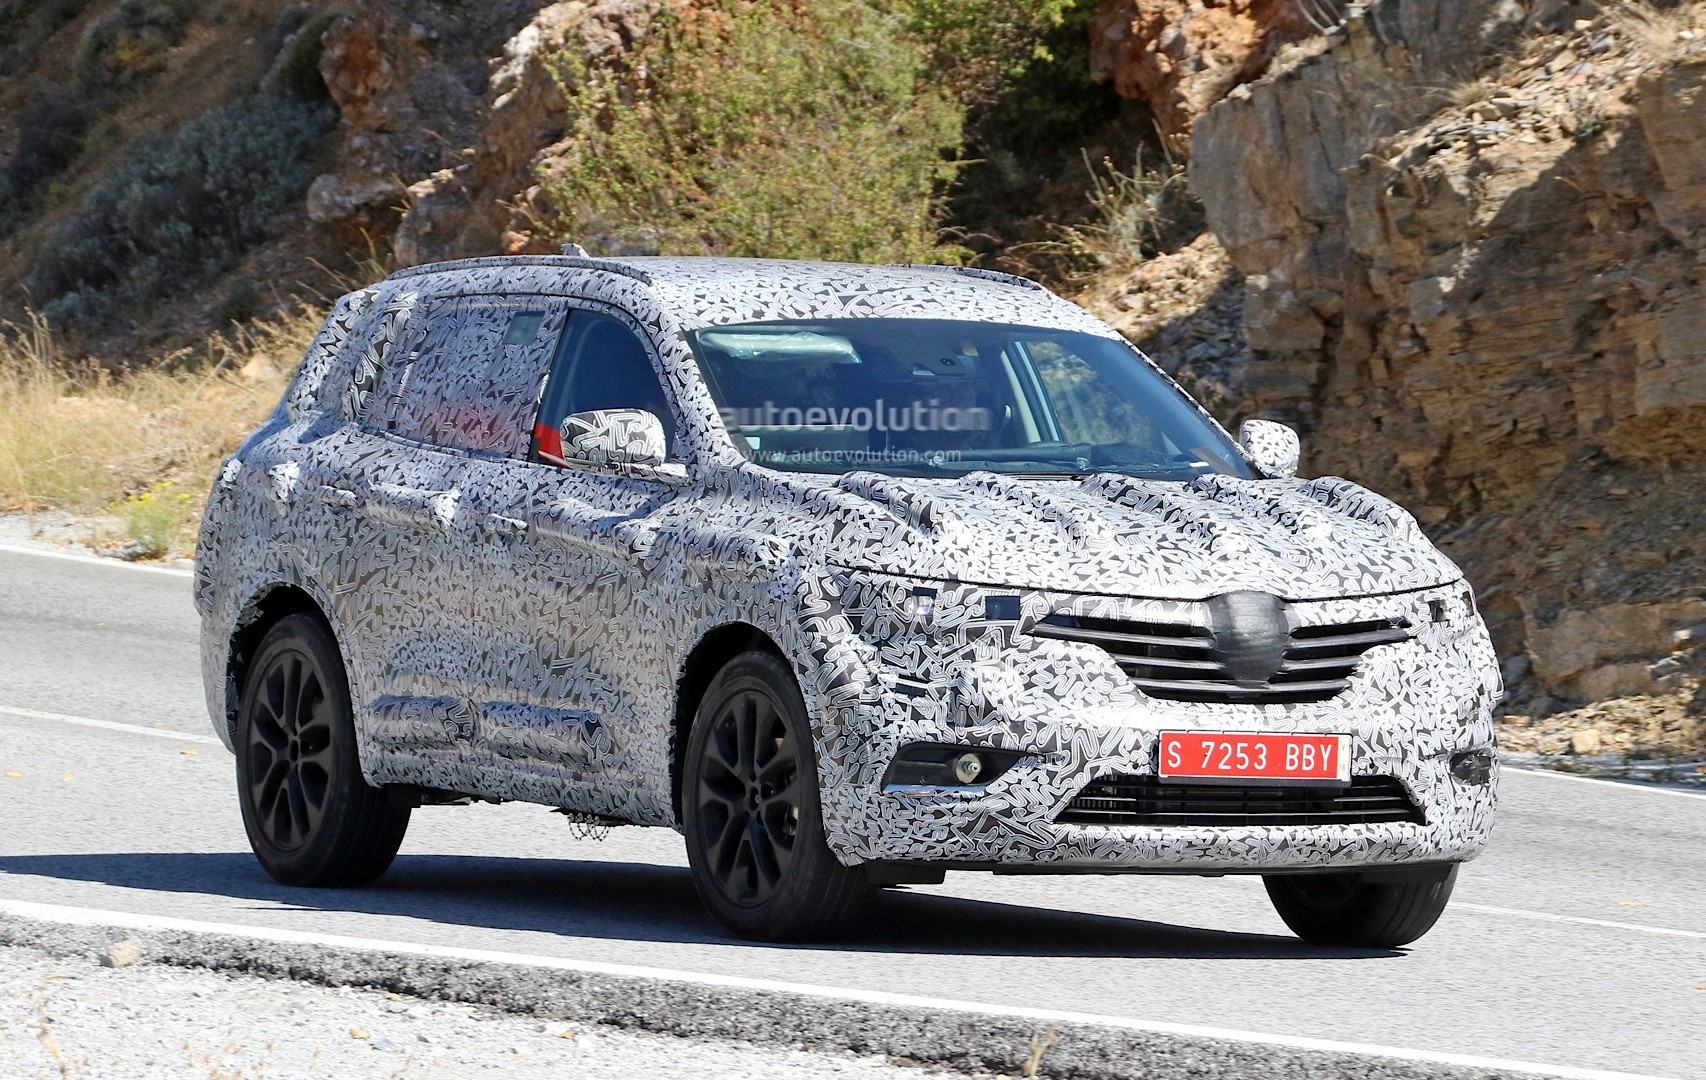 spyshots 2017 renault koleos 7 seat suv features talisman styling autoevolution. Black Bedroom Furniture Sets. Home Design Ideas